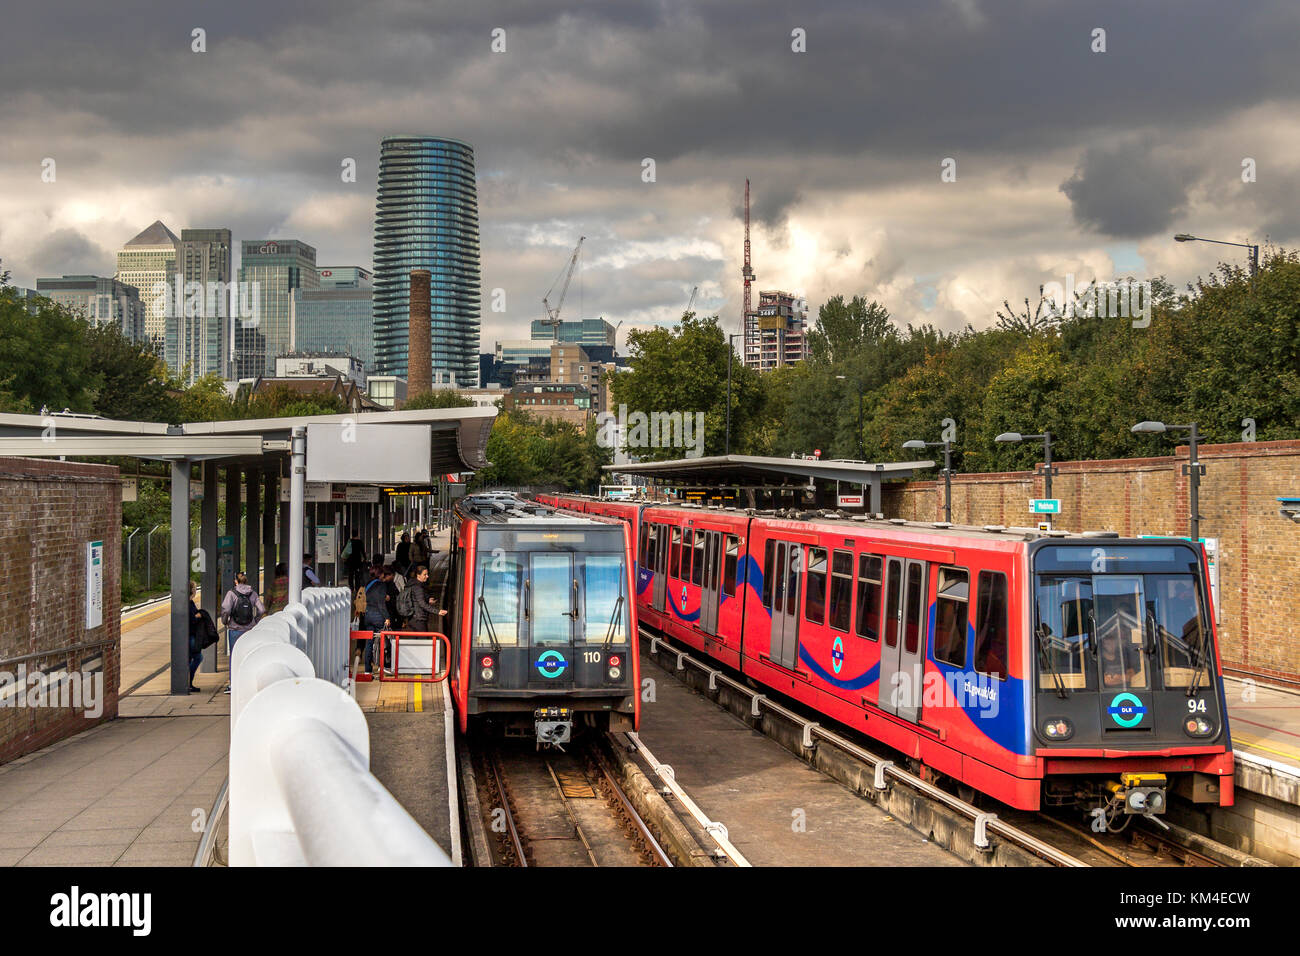 Rail Passengers board a Dockland's Light Railway Train at Mudchute DLR Station with the towers of Canary Wharf - Stock Image